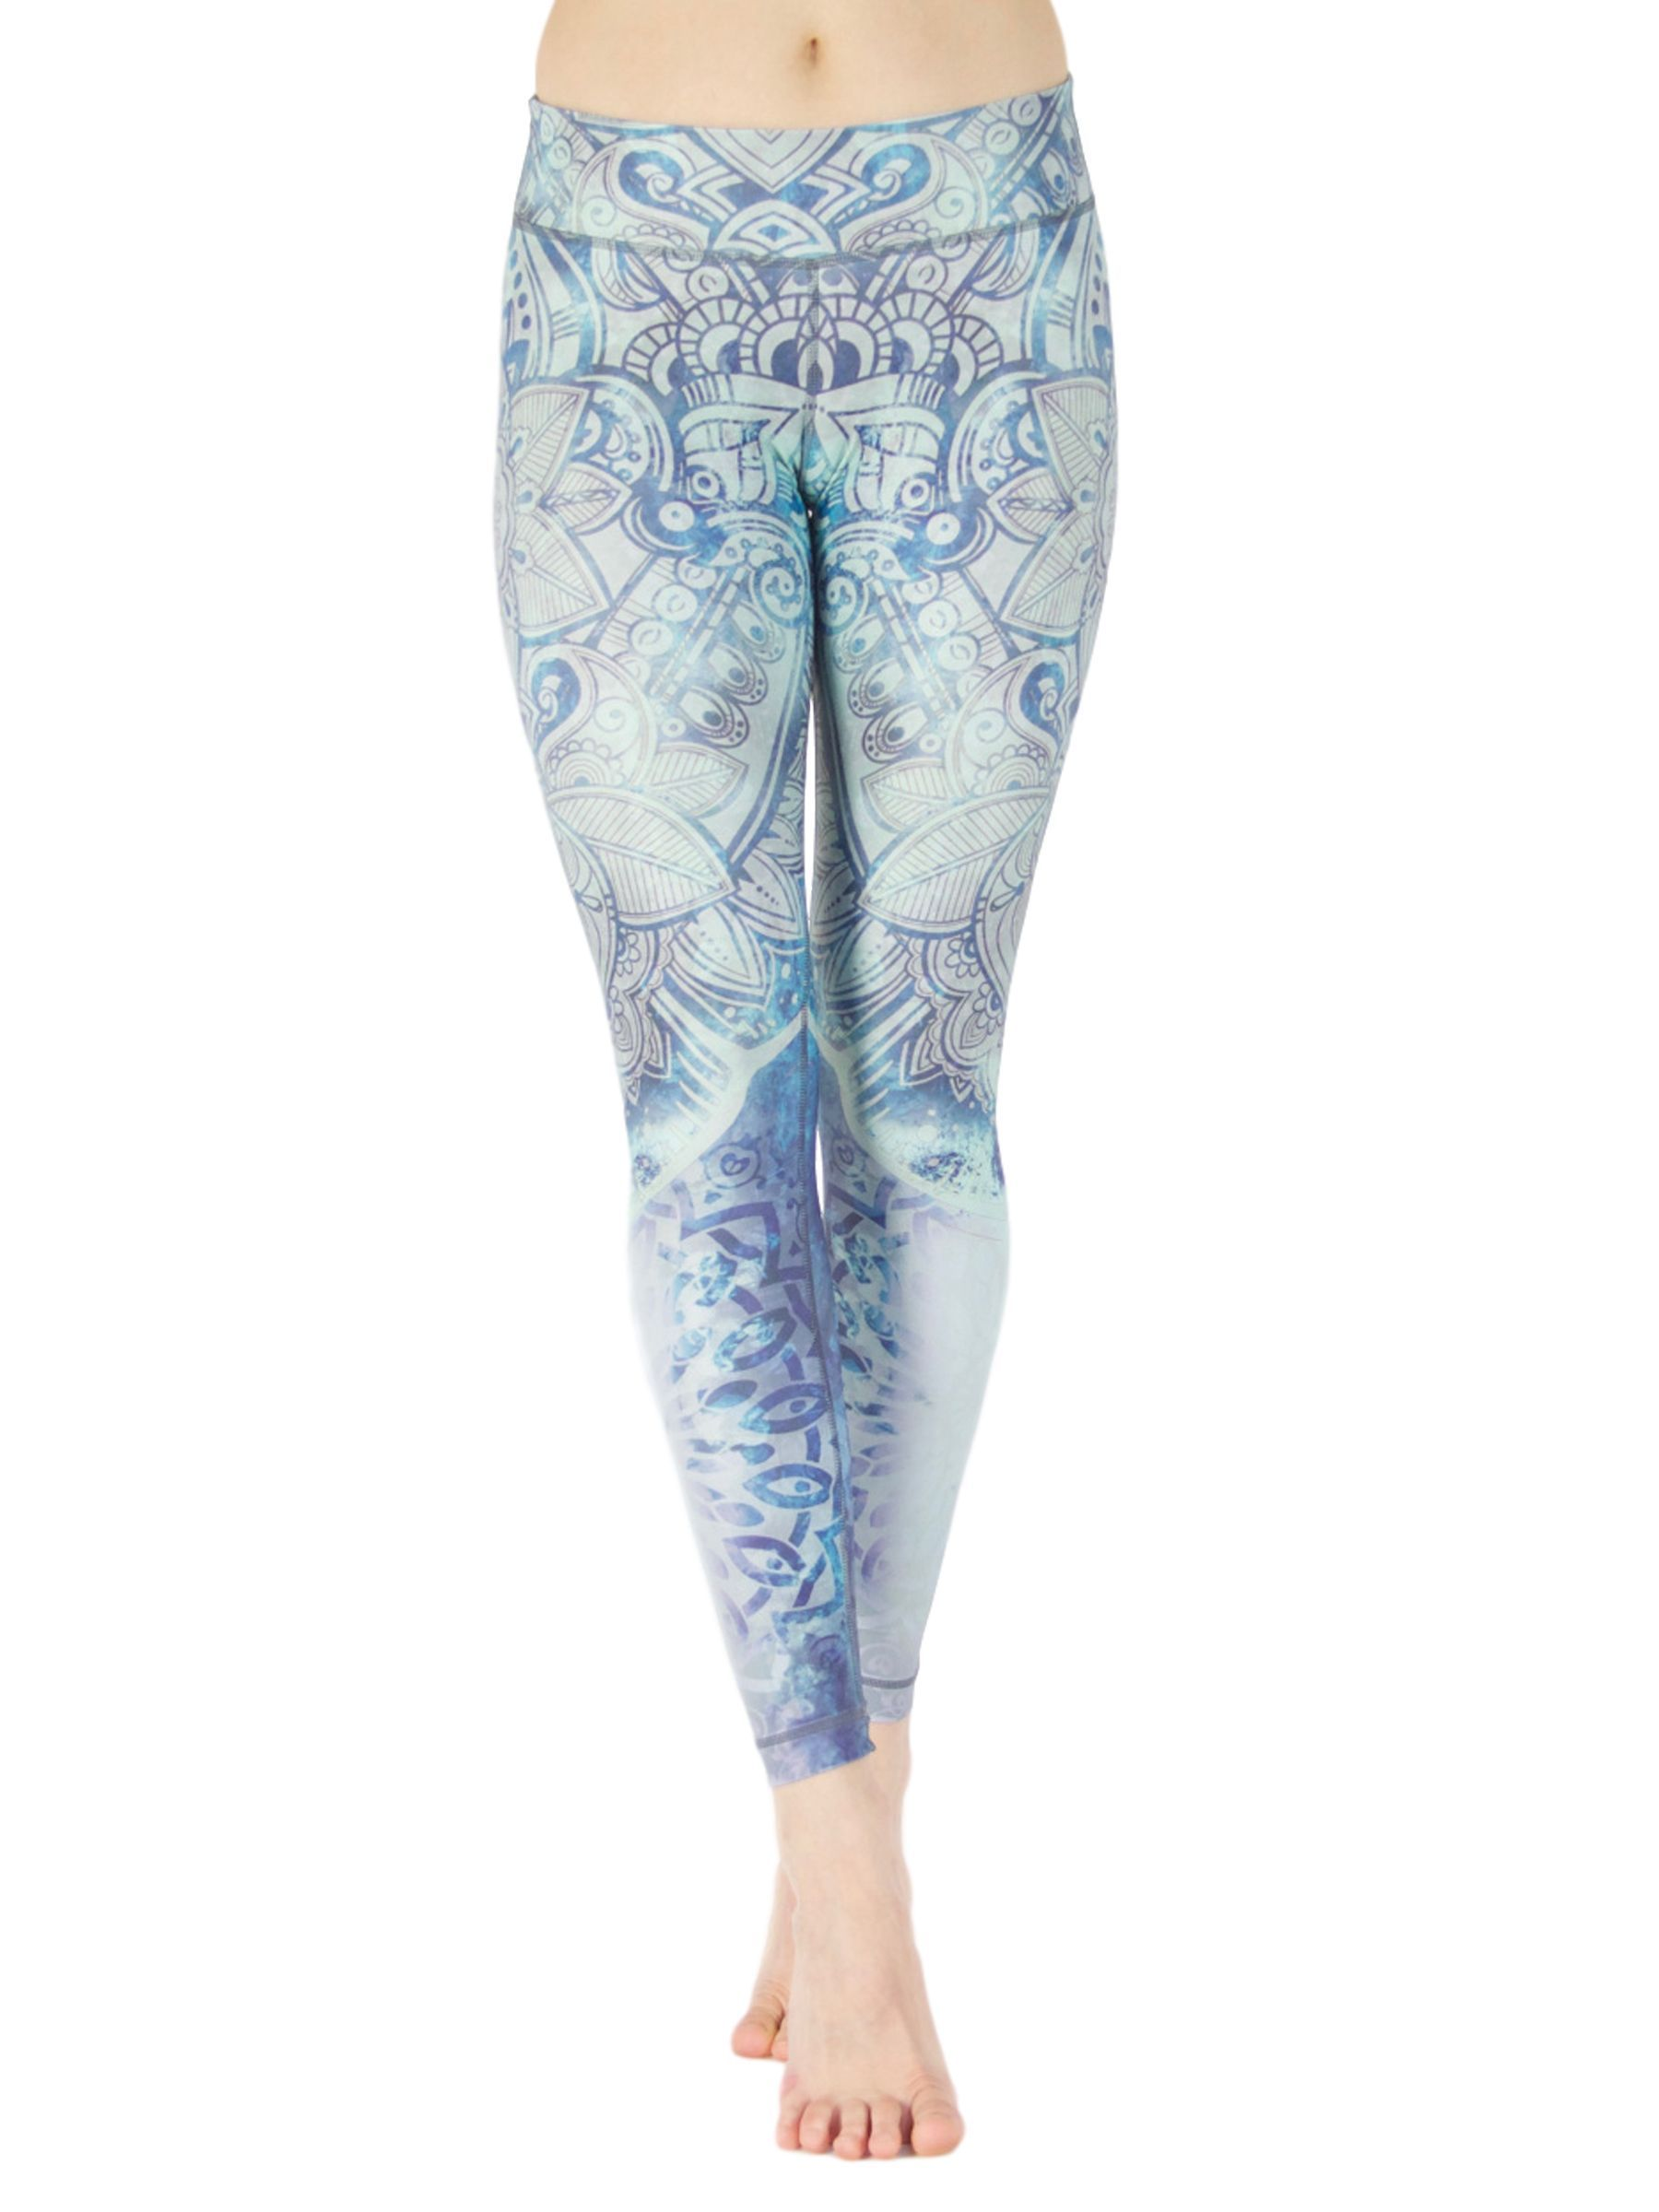 Namastey Leggings - Colorful Artistic Yoga Pants for Women.